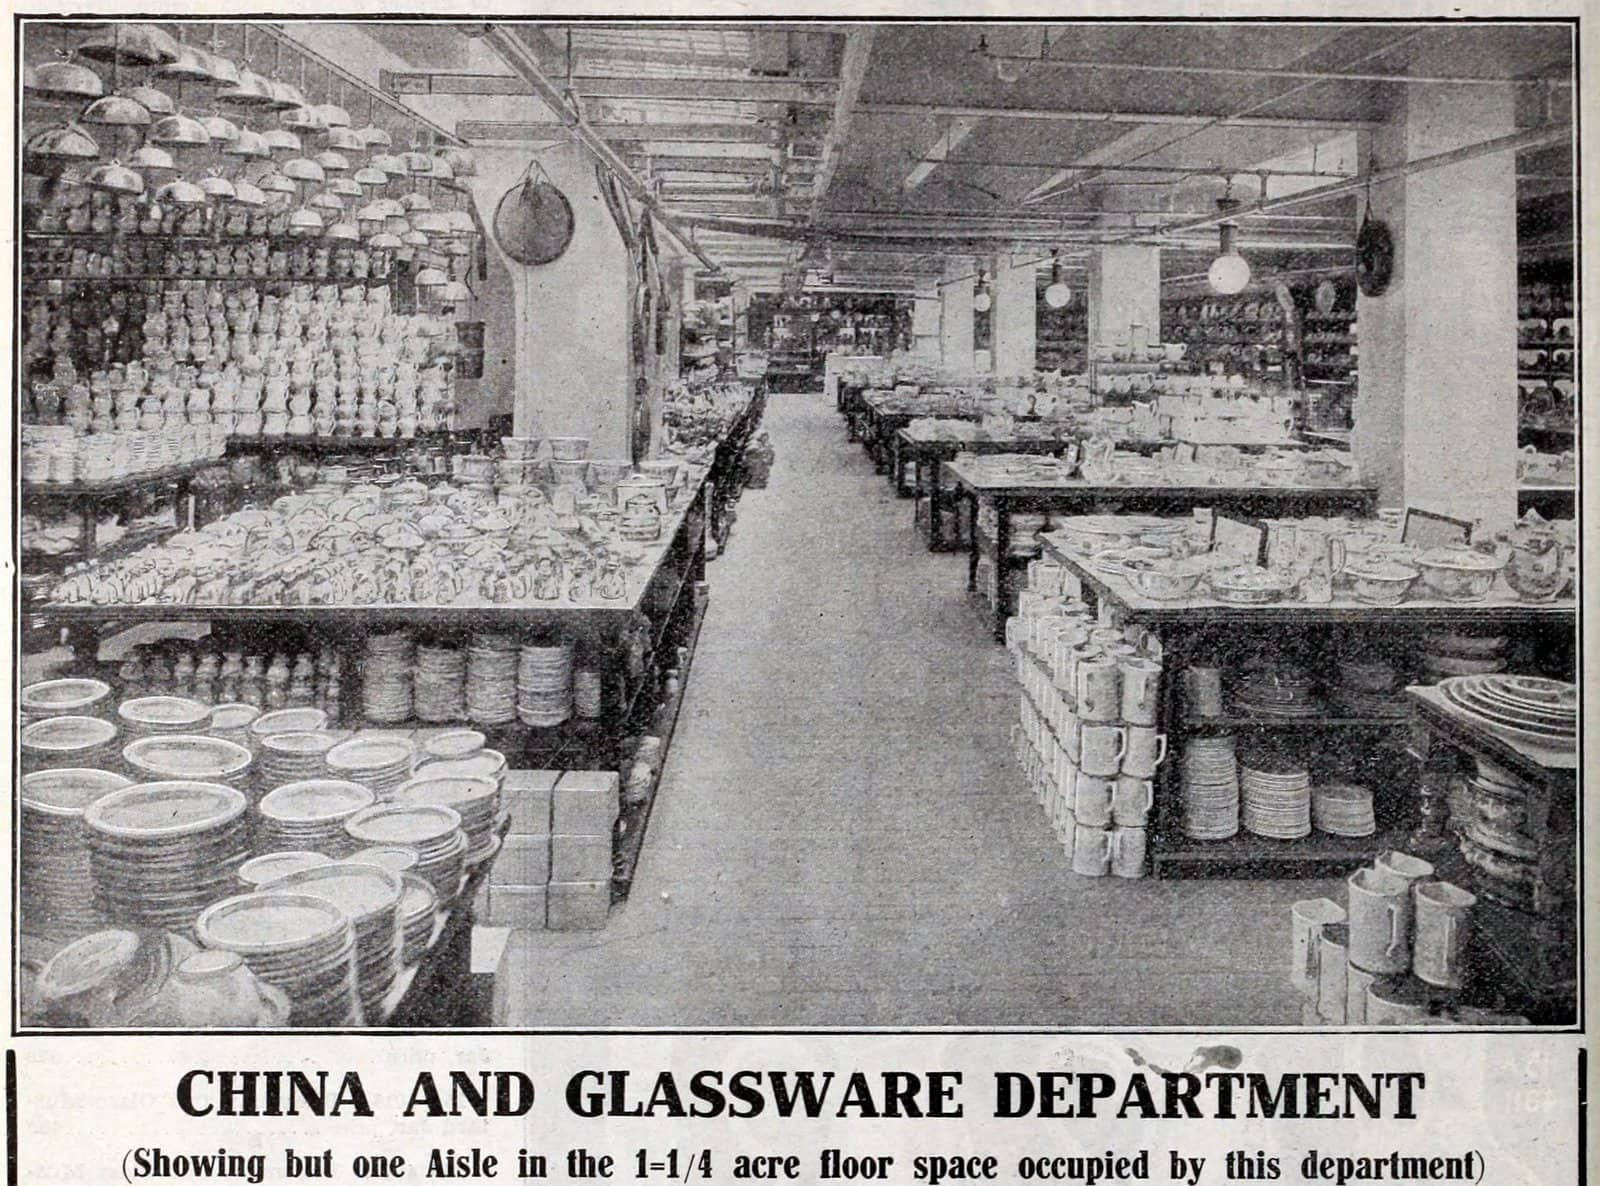 China and glassware department at the vintage Macy's store in NYC (1900s)